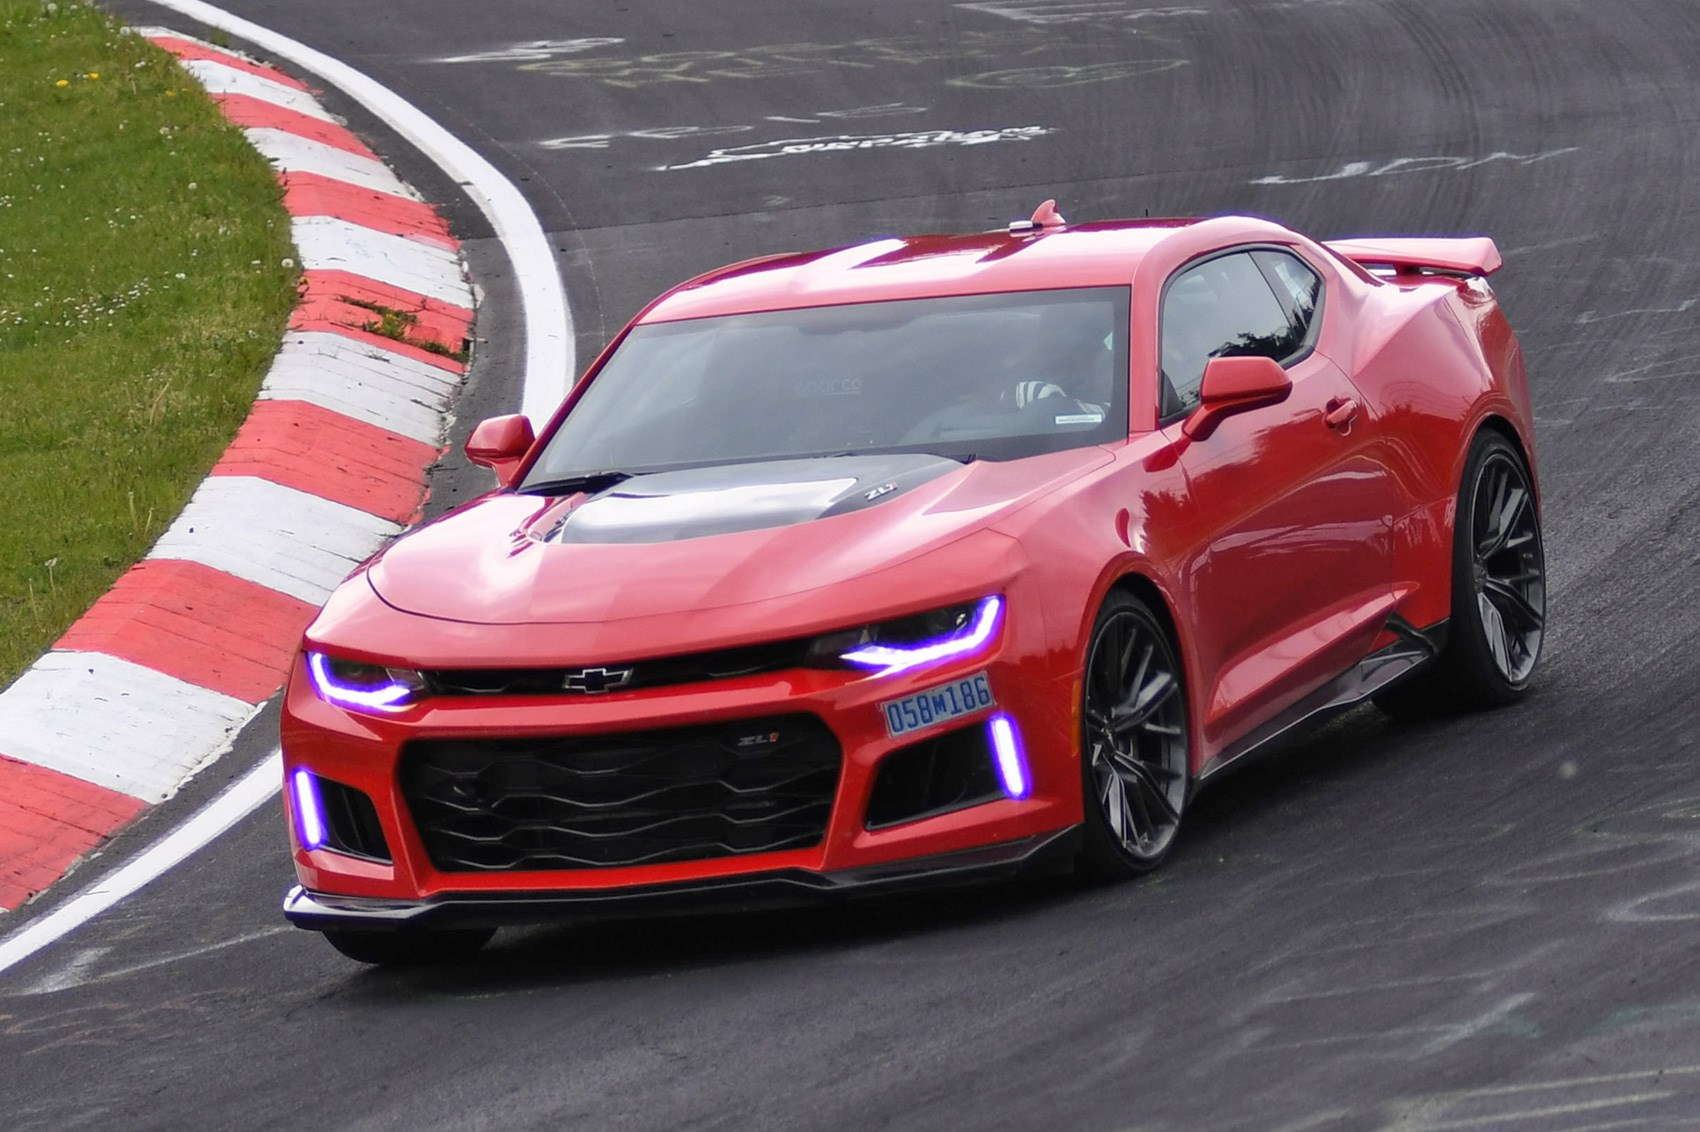 Chevrolets 650bhp 2017 camaro zl1 hits home at the nrburgring by chevrolets 650bhp 2017 camaro zl1 hits home at the nrburgring voltagebd Image collections